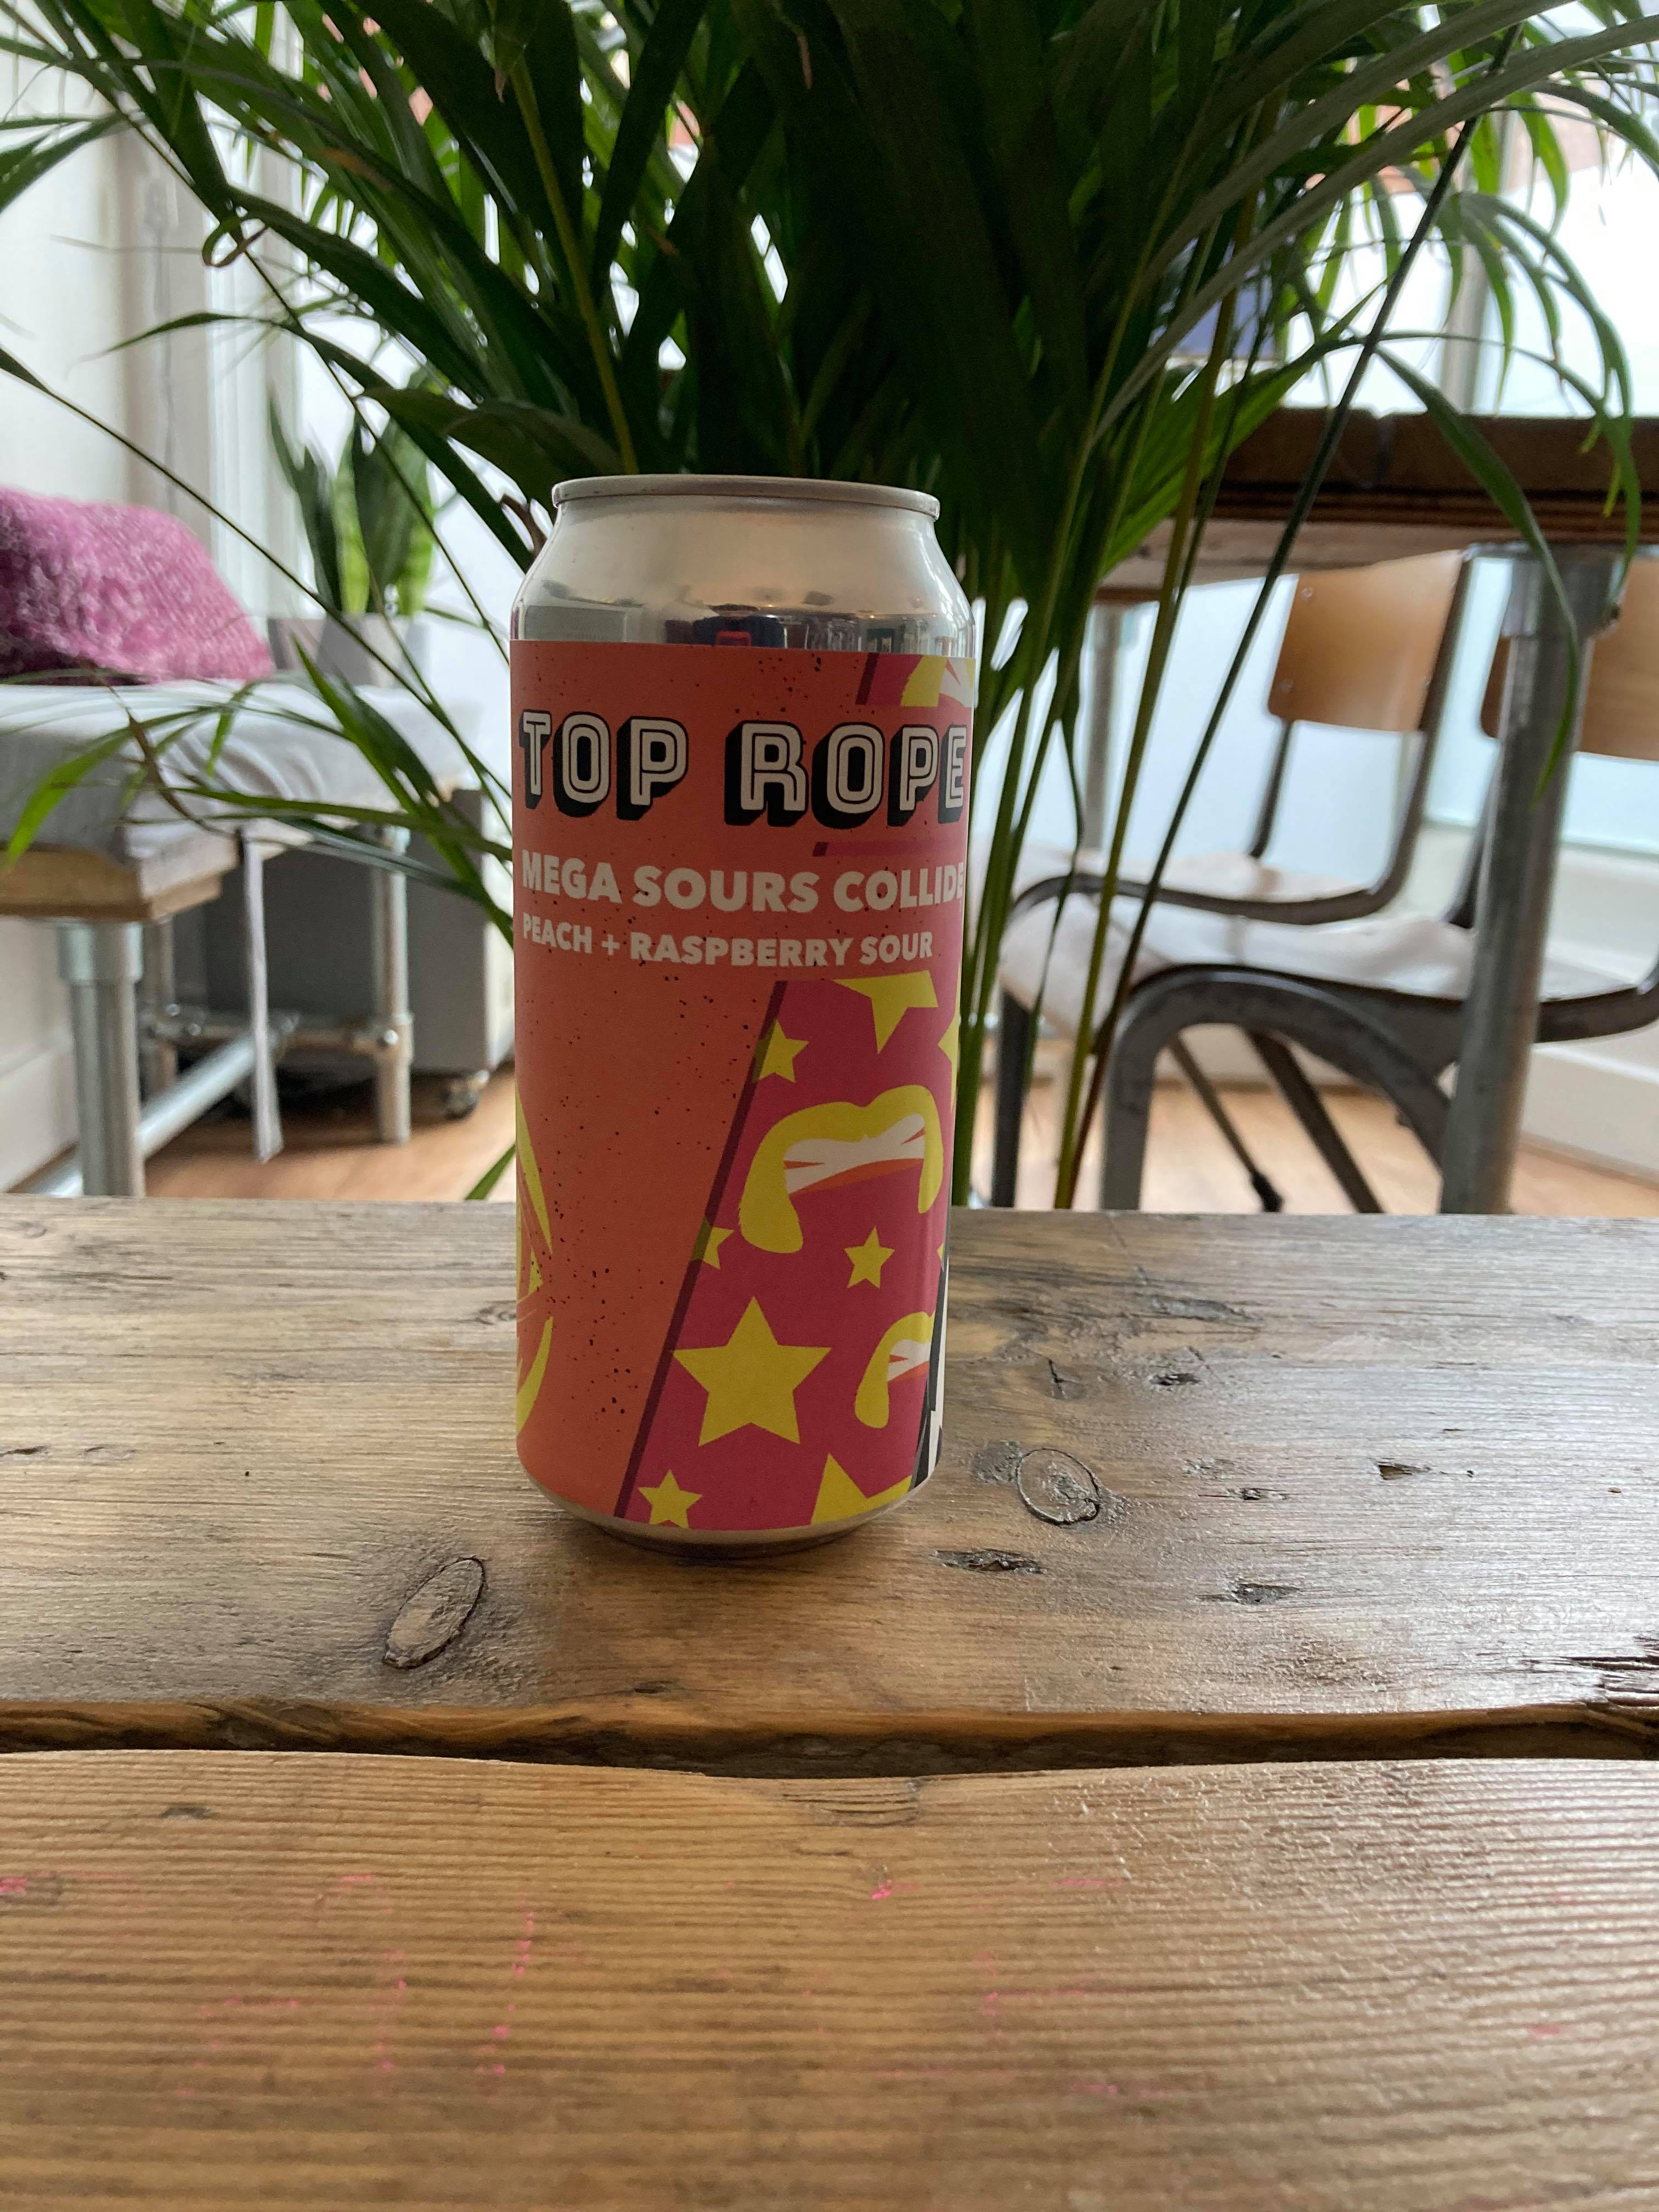 Top Rope - Mega Sours Collide 3.9%